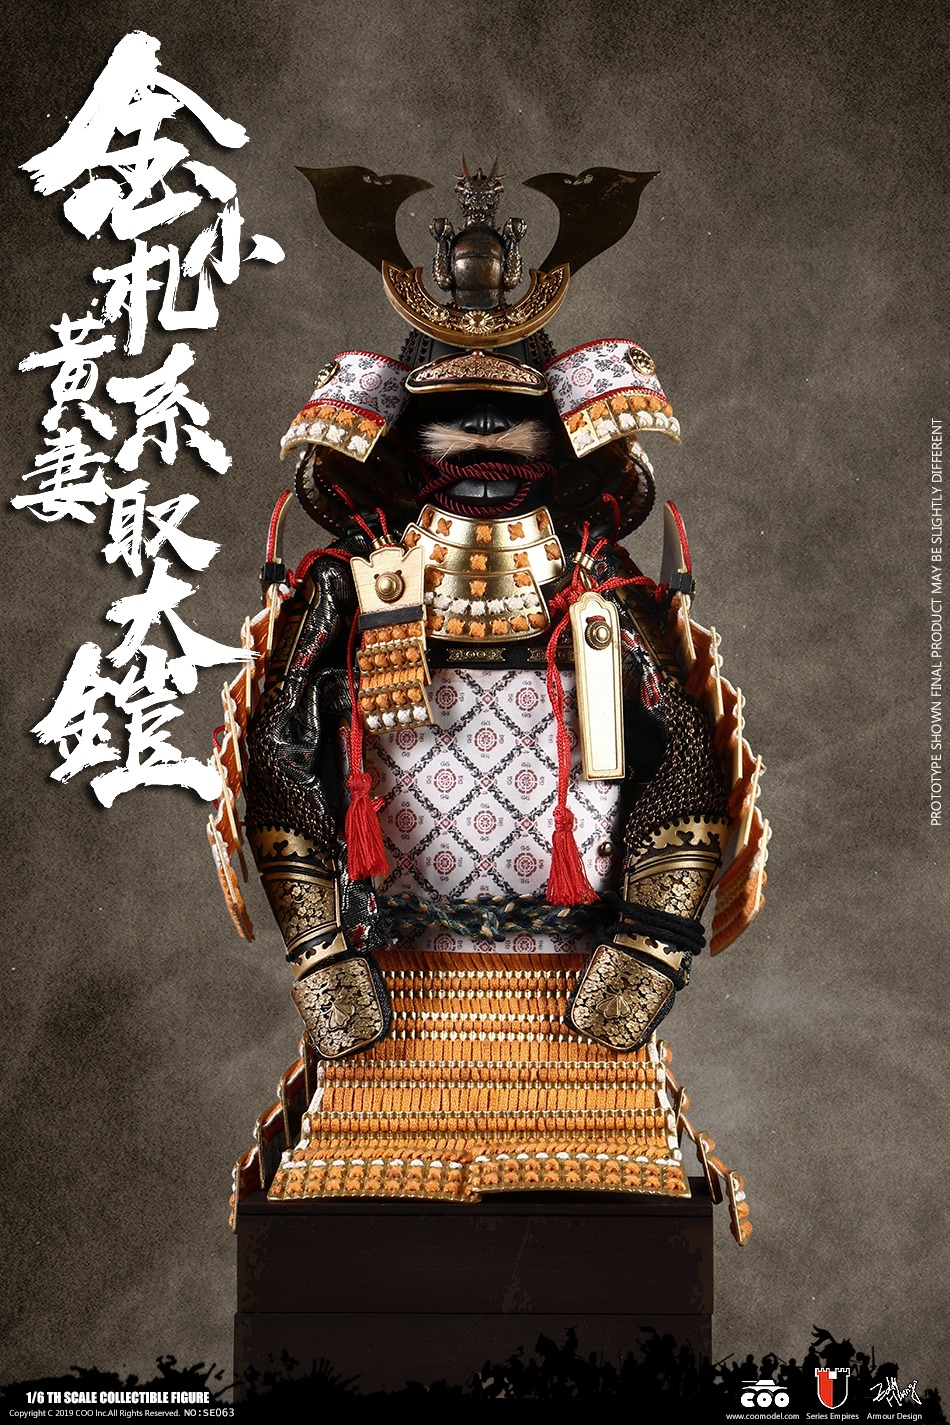 japanese - NEW PRODUCT: COOMODEL: 1/6 Empire Series Legendary Edition-Jin Xiaozha's Yellow Wife Takes Big Armor & 狮 Series Lion-shaped 锖 Iron Hit 19081210